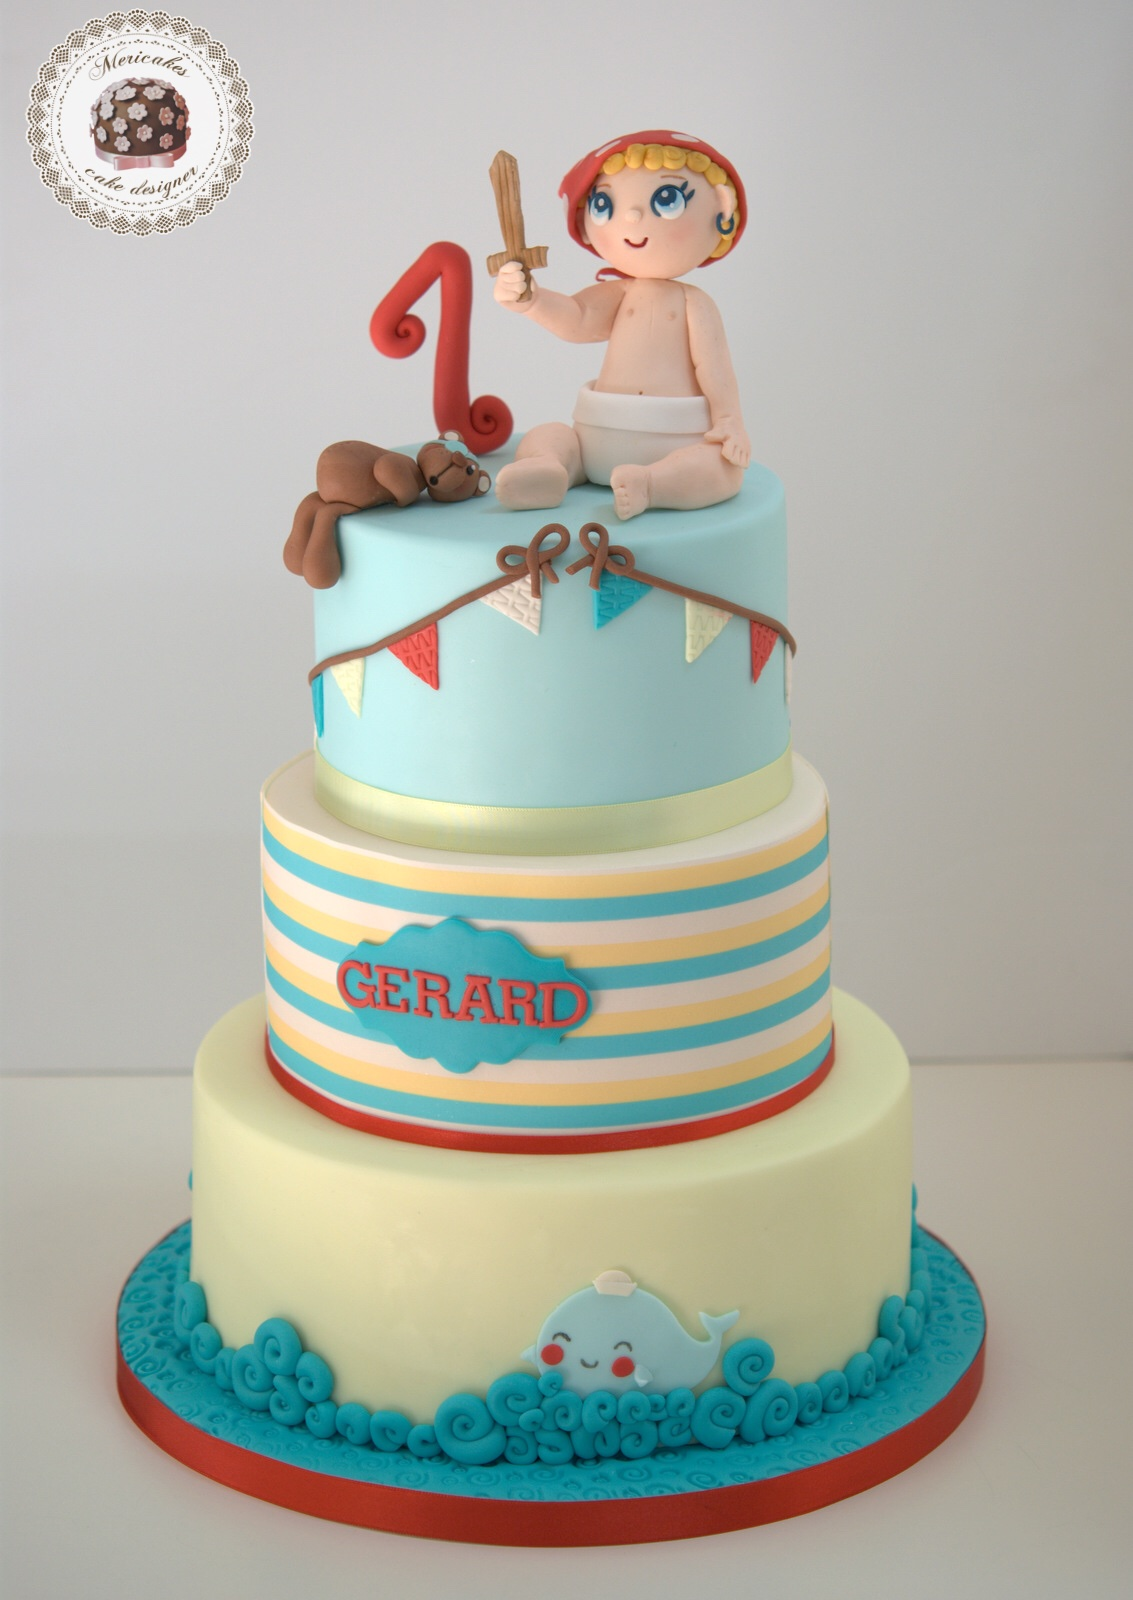 tarta-infantil-baby-cake-pirate-kawaii-tartas-barcelona-mericakes-pirata-marinera-sailor-cake-decorating-6